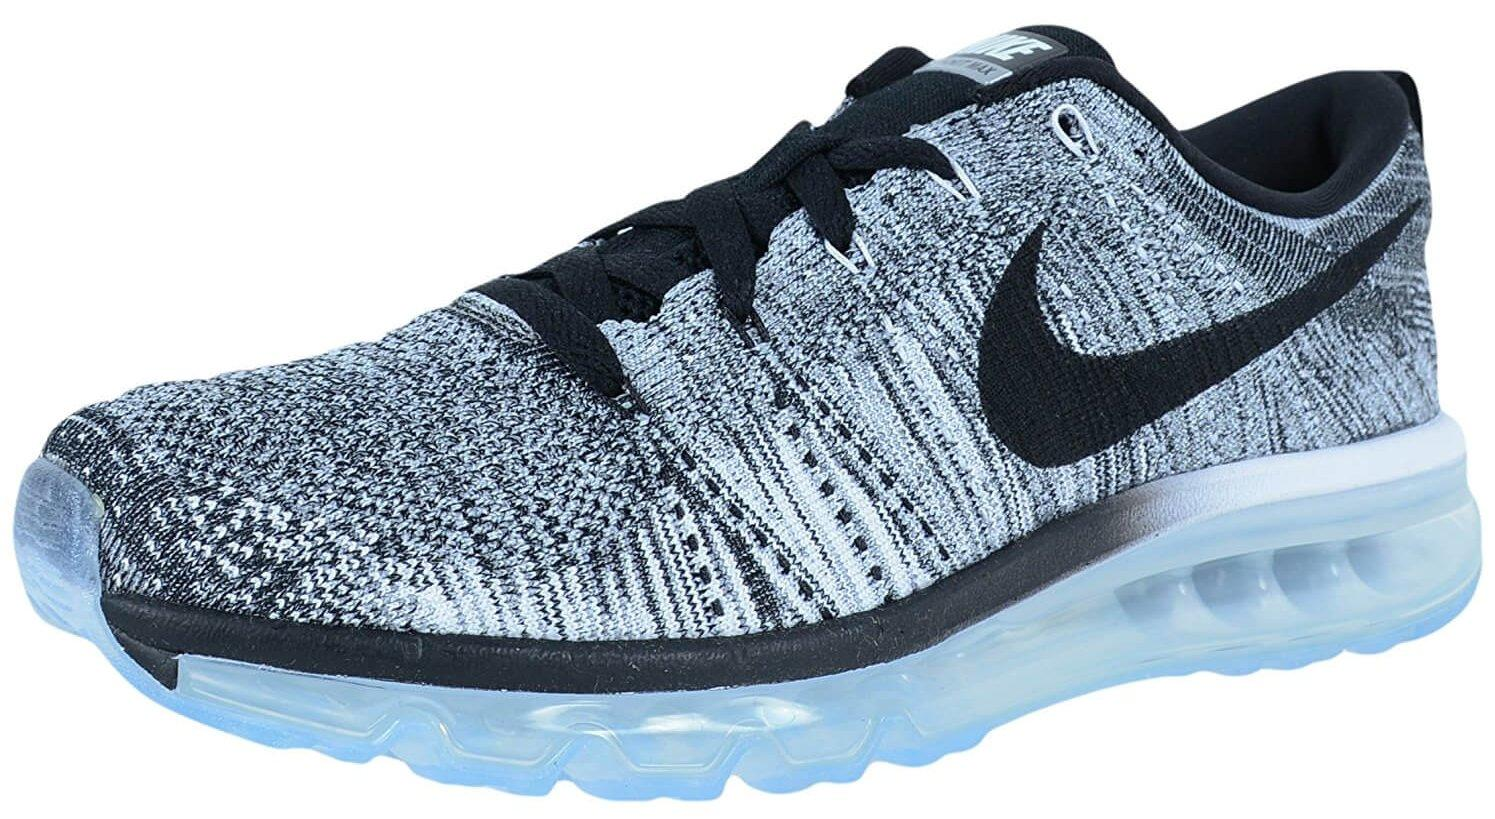 100% authentic bd4aa a5b9c Nike Flyknit Air Max